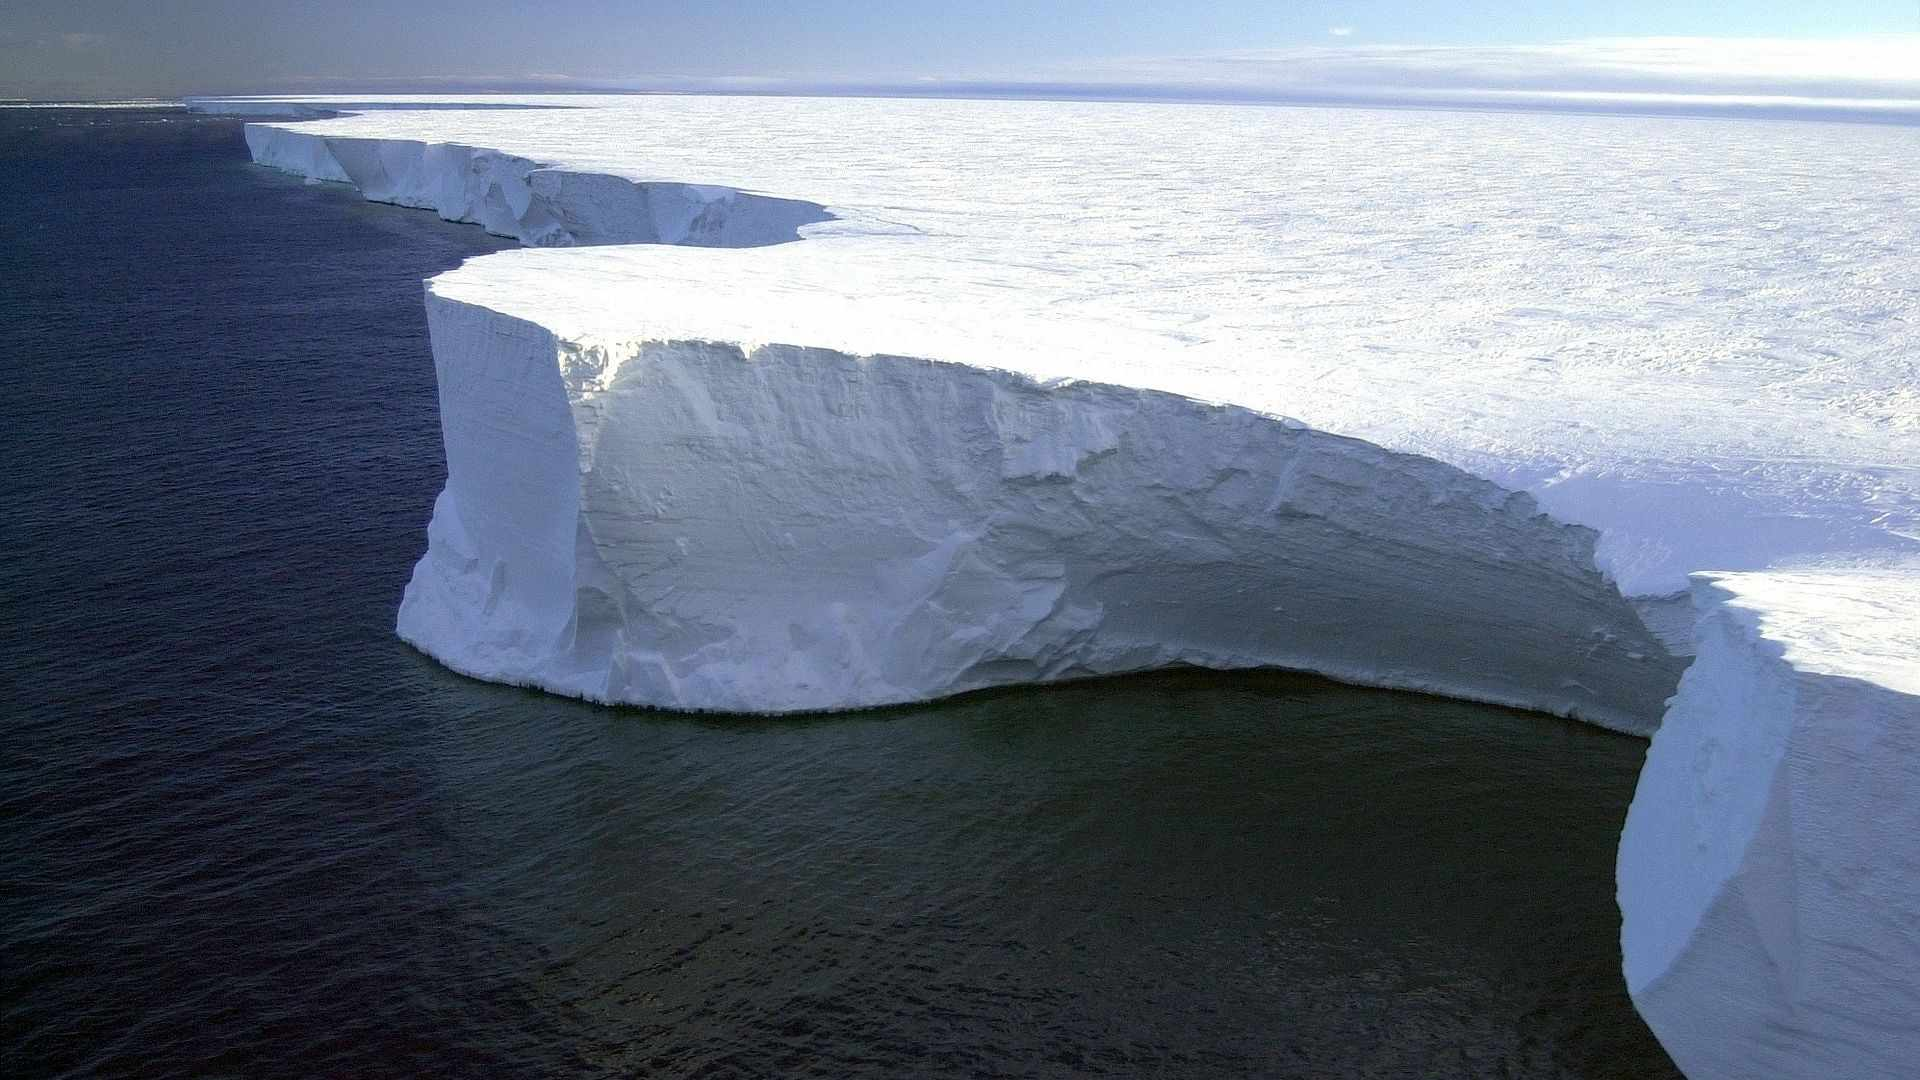 Where the ice shelf meets the ocean